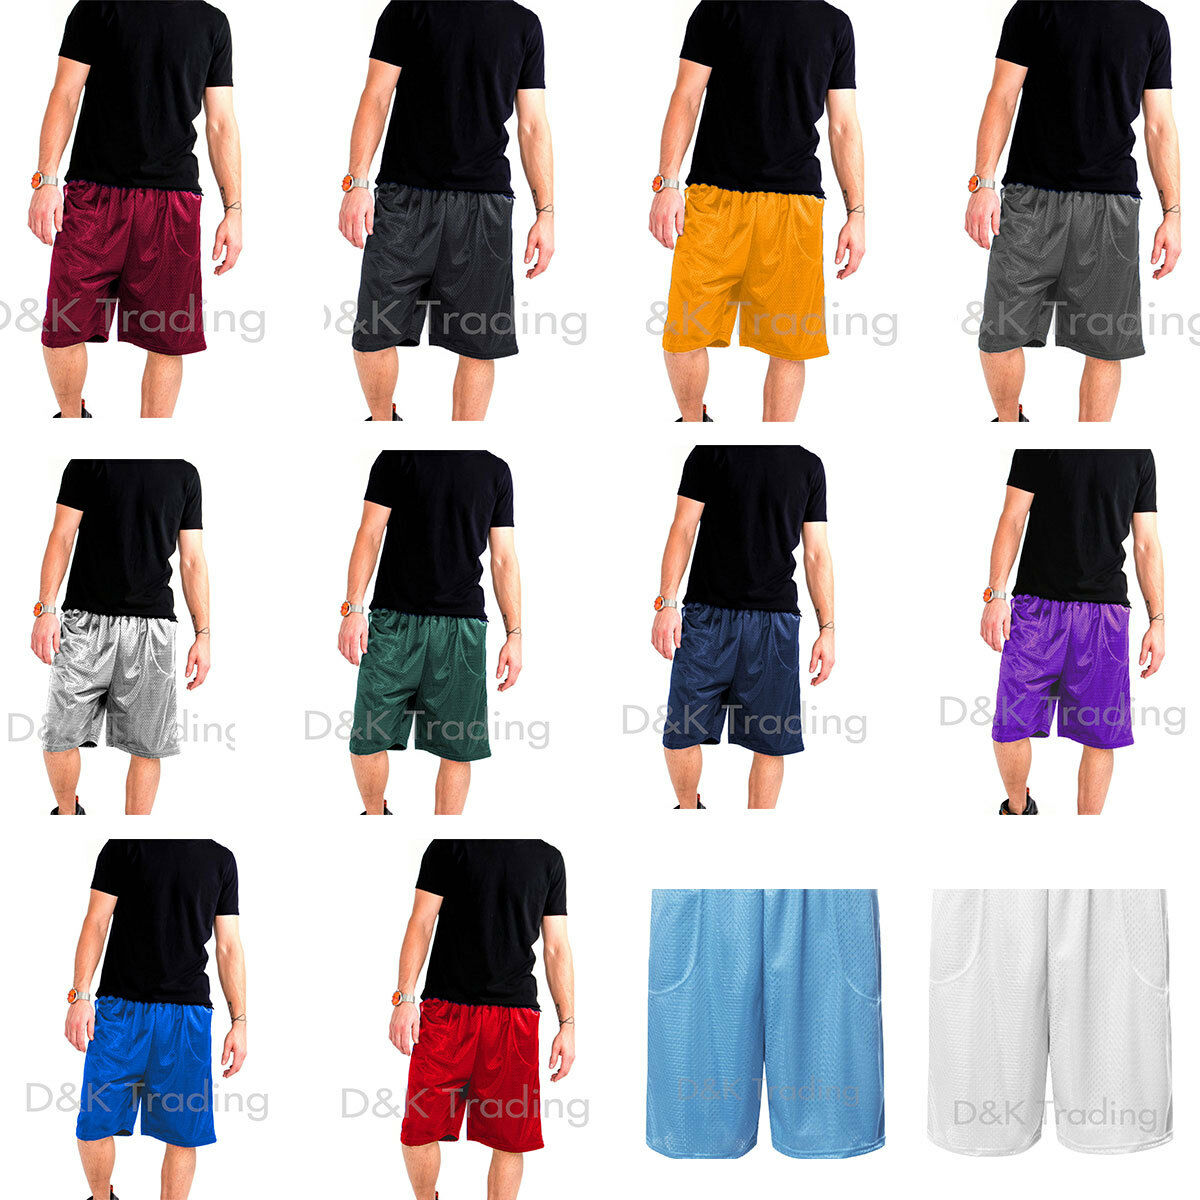 Men's Mesh Jersey Athletic Fitness Workout Colors Shorts 2 P